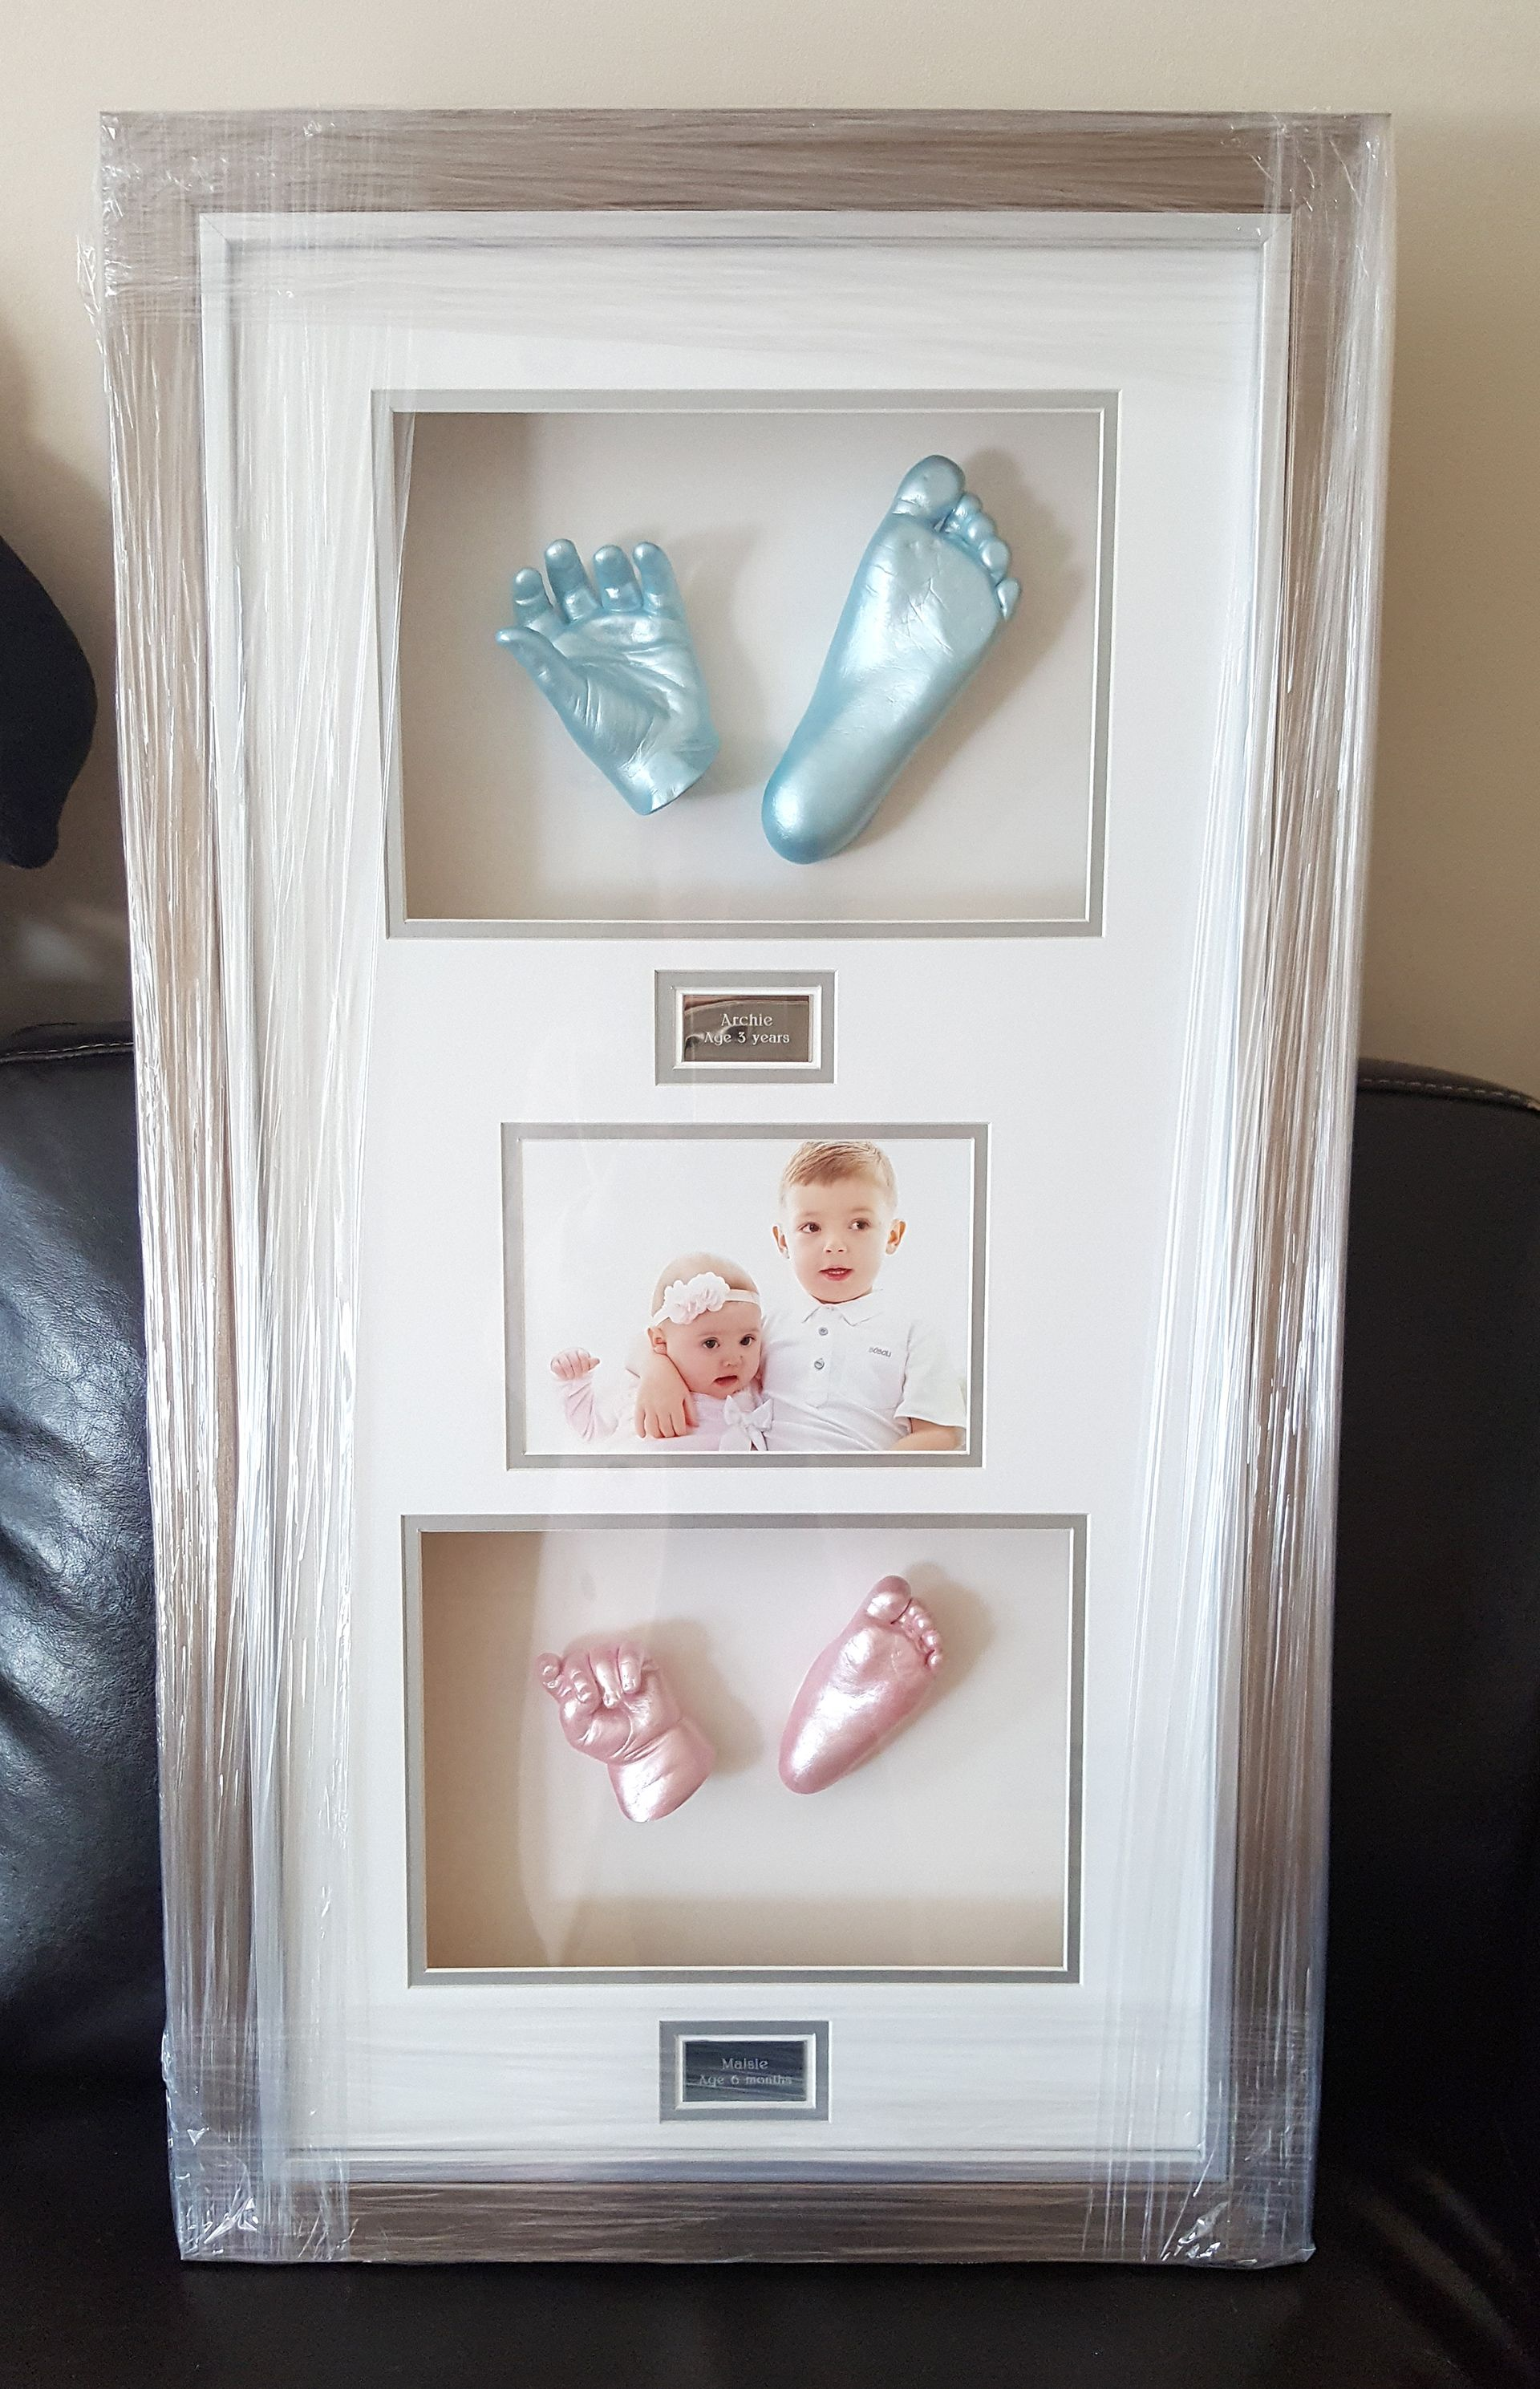 New Baby Casting Kit hand feet imprint 3D plaster casts /& antique silver frame